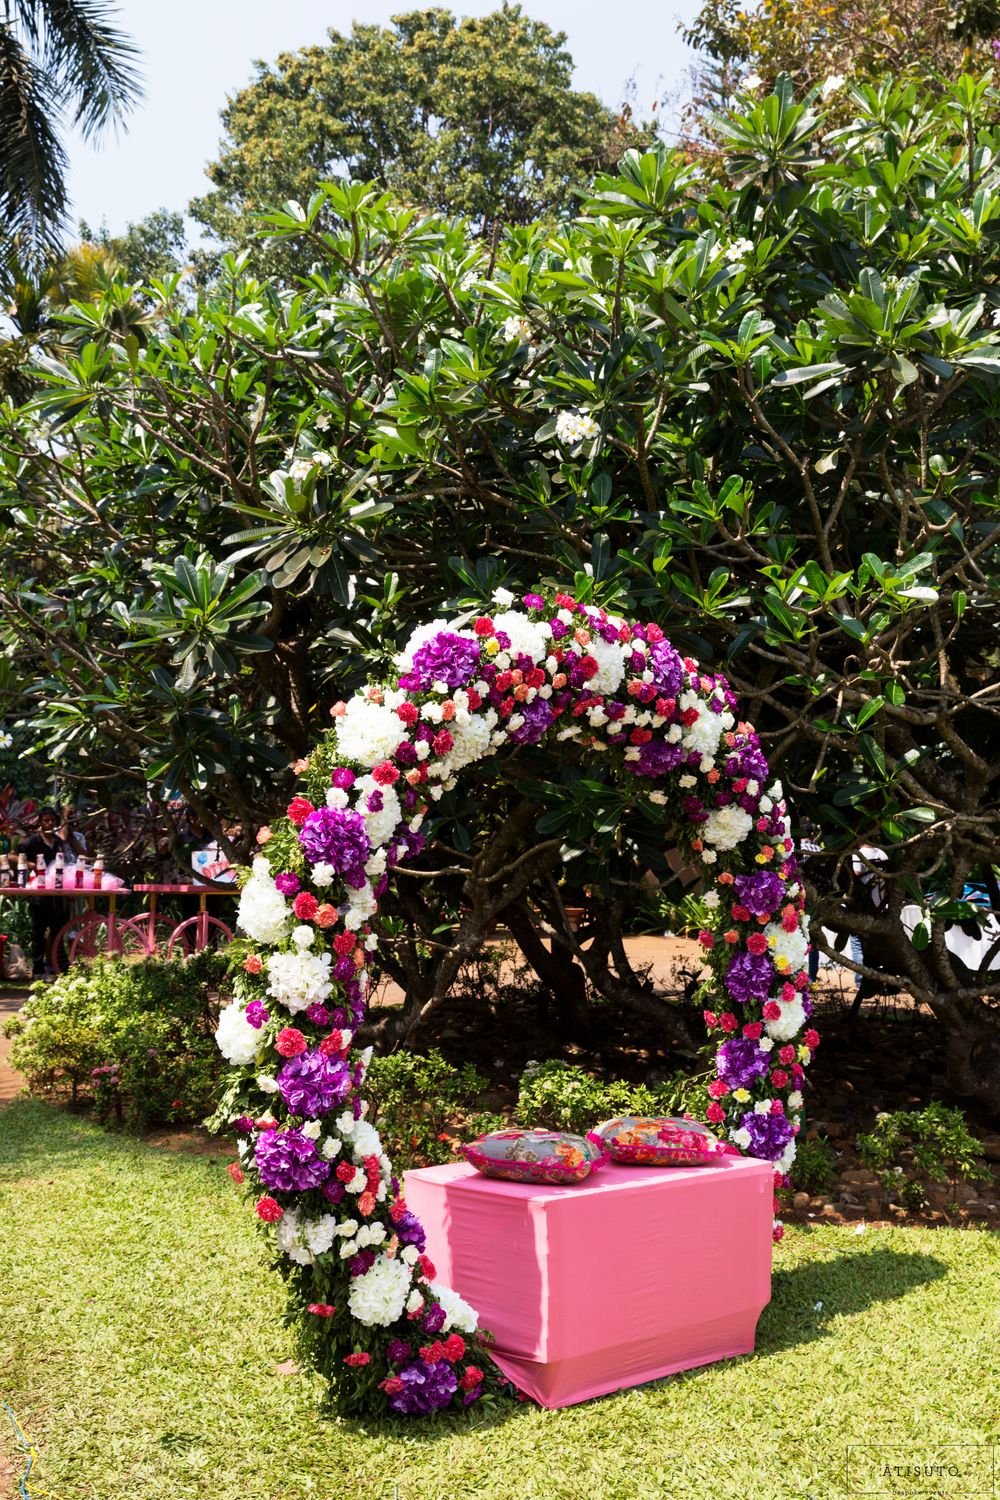 Photo of Floral wreath seating for a bride on a mehendi function